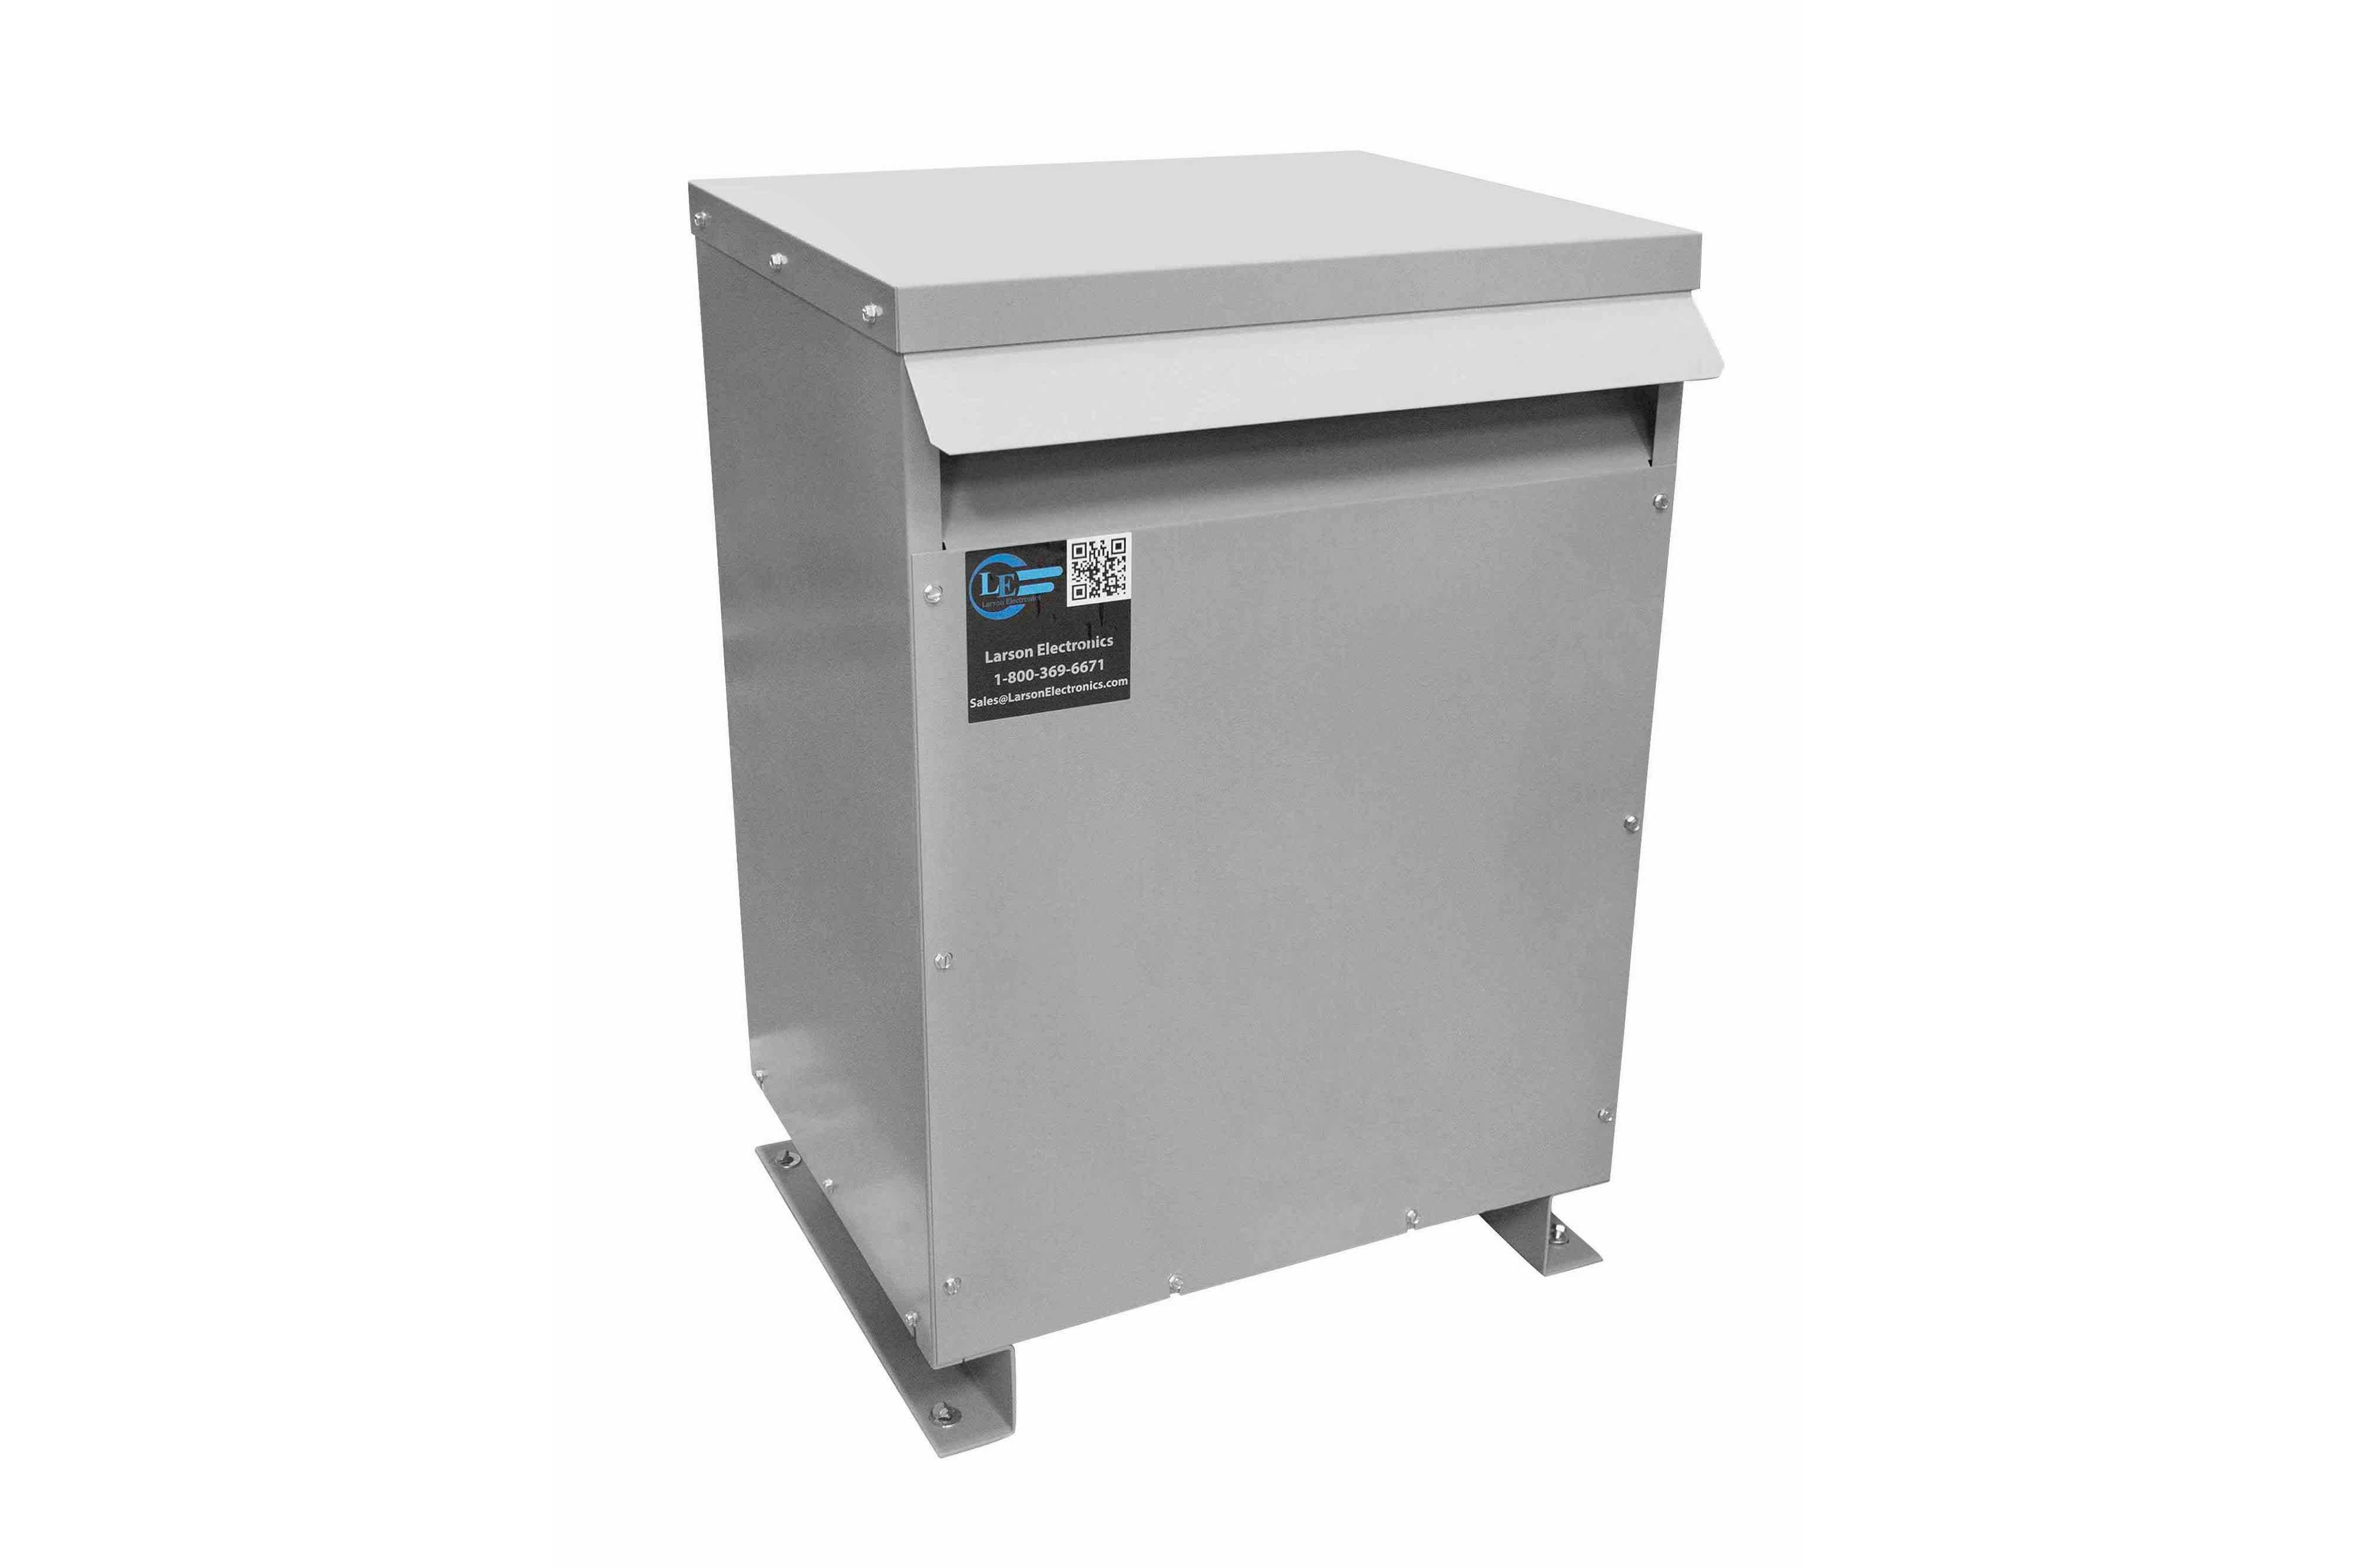 175 kVA 3PH Isolation Transformer, 460V Delta Primary, 415V Delta Secondary, N3R, Ventilated, 60 Hz